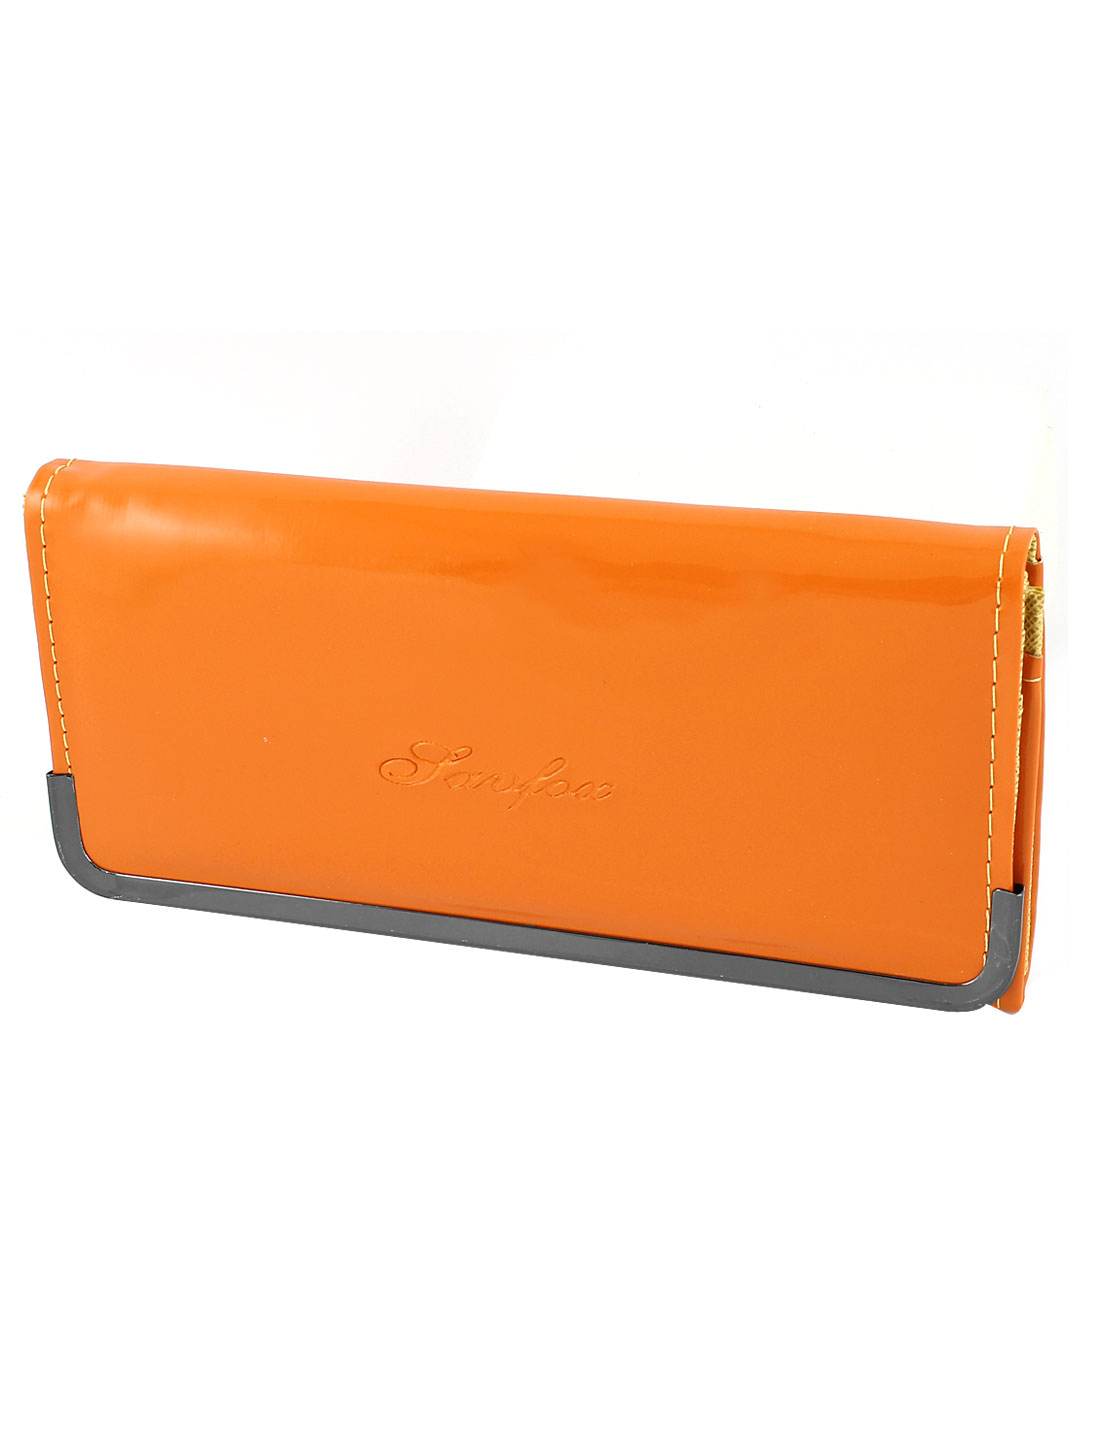 Ladies Metal Frame Orange Patent Leather Card Slots Button Closure Handbag Purse